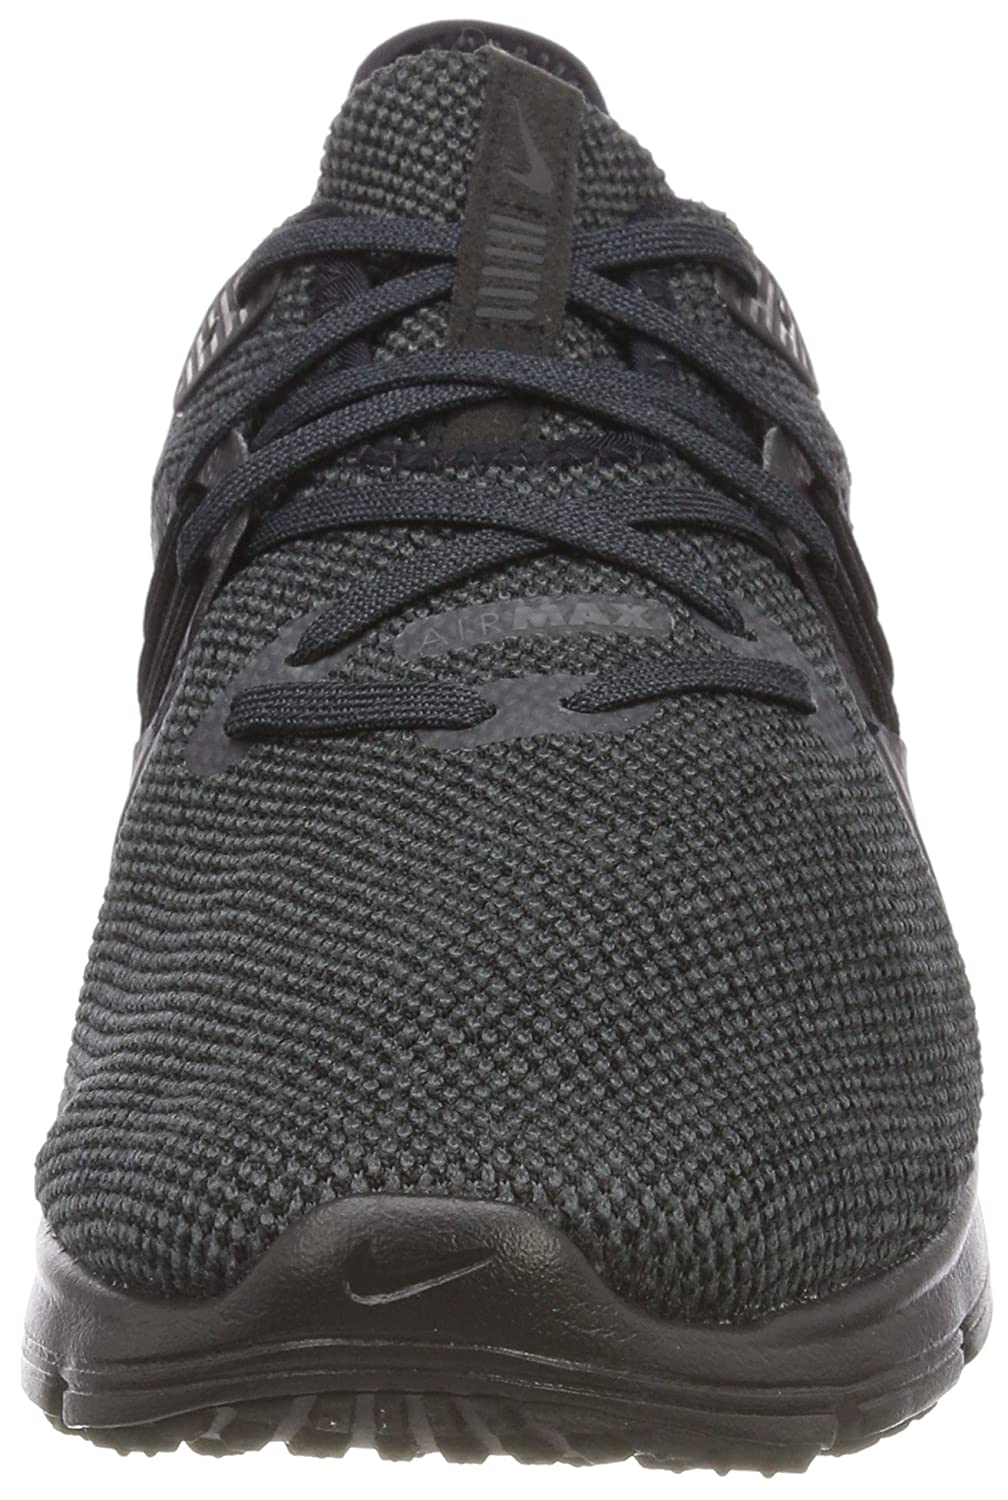 Nike Men s Air Max Sequent 3 Running Shoes  Amazon.co.uk  Shoes   Bags 904117aec